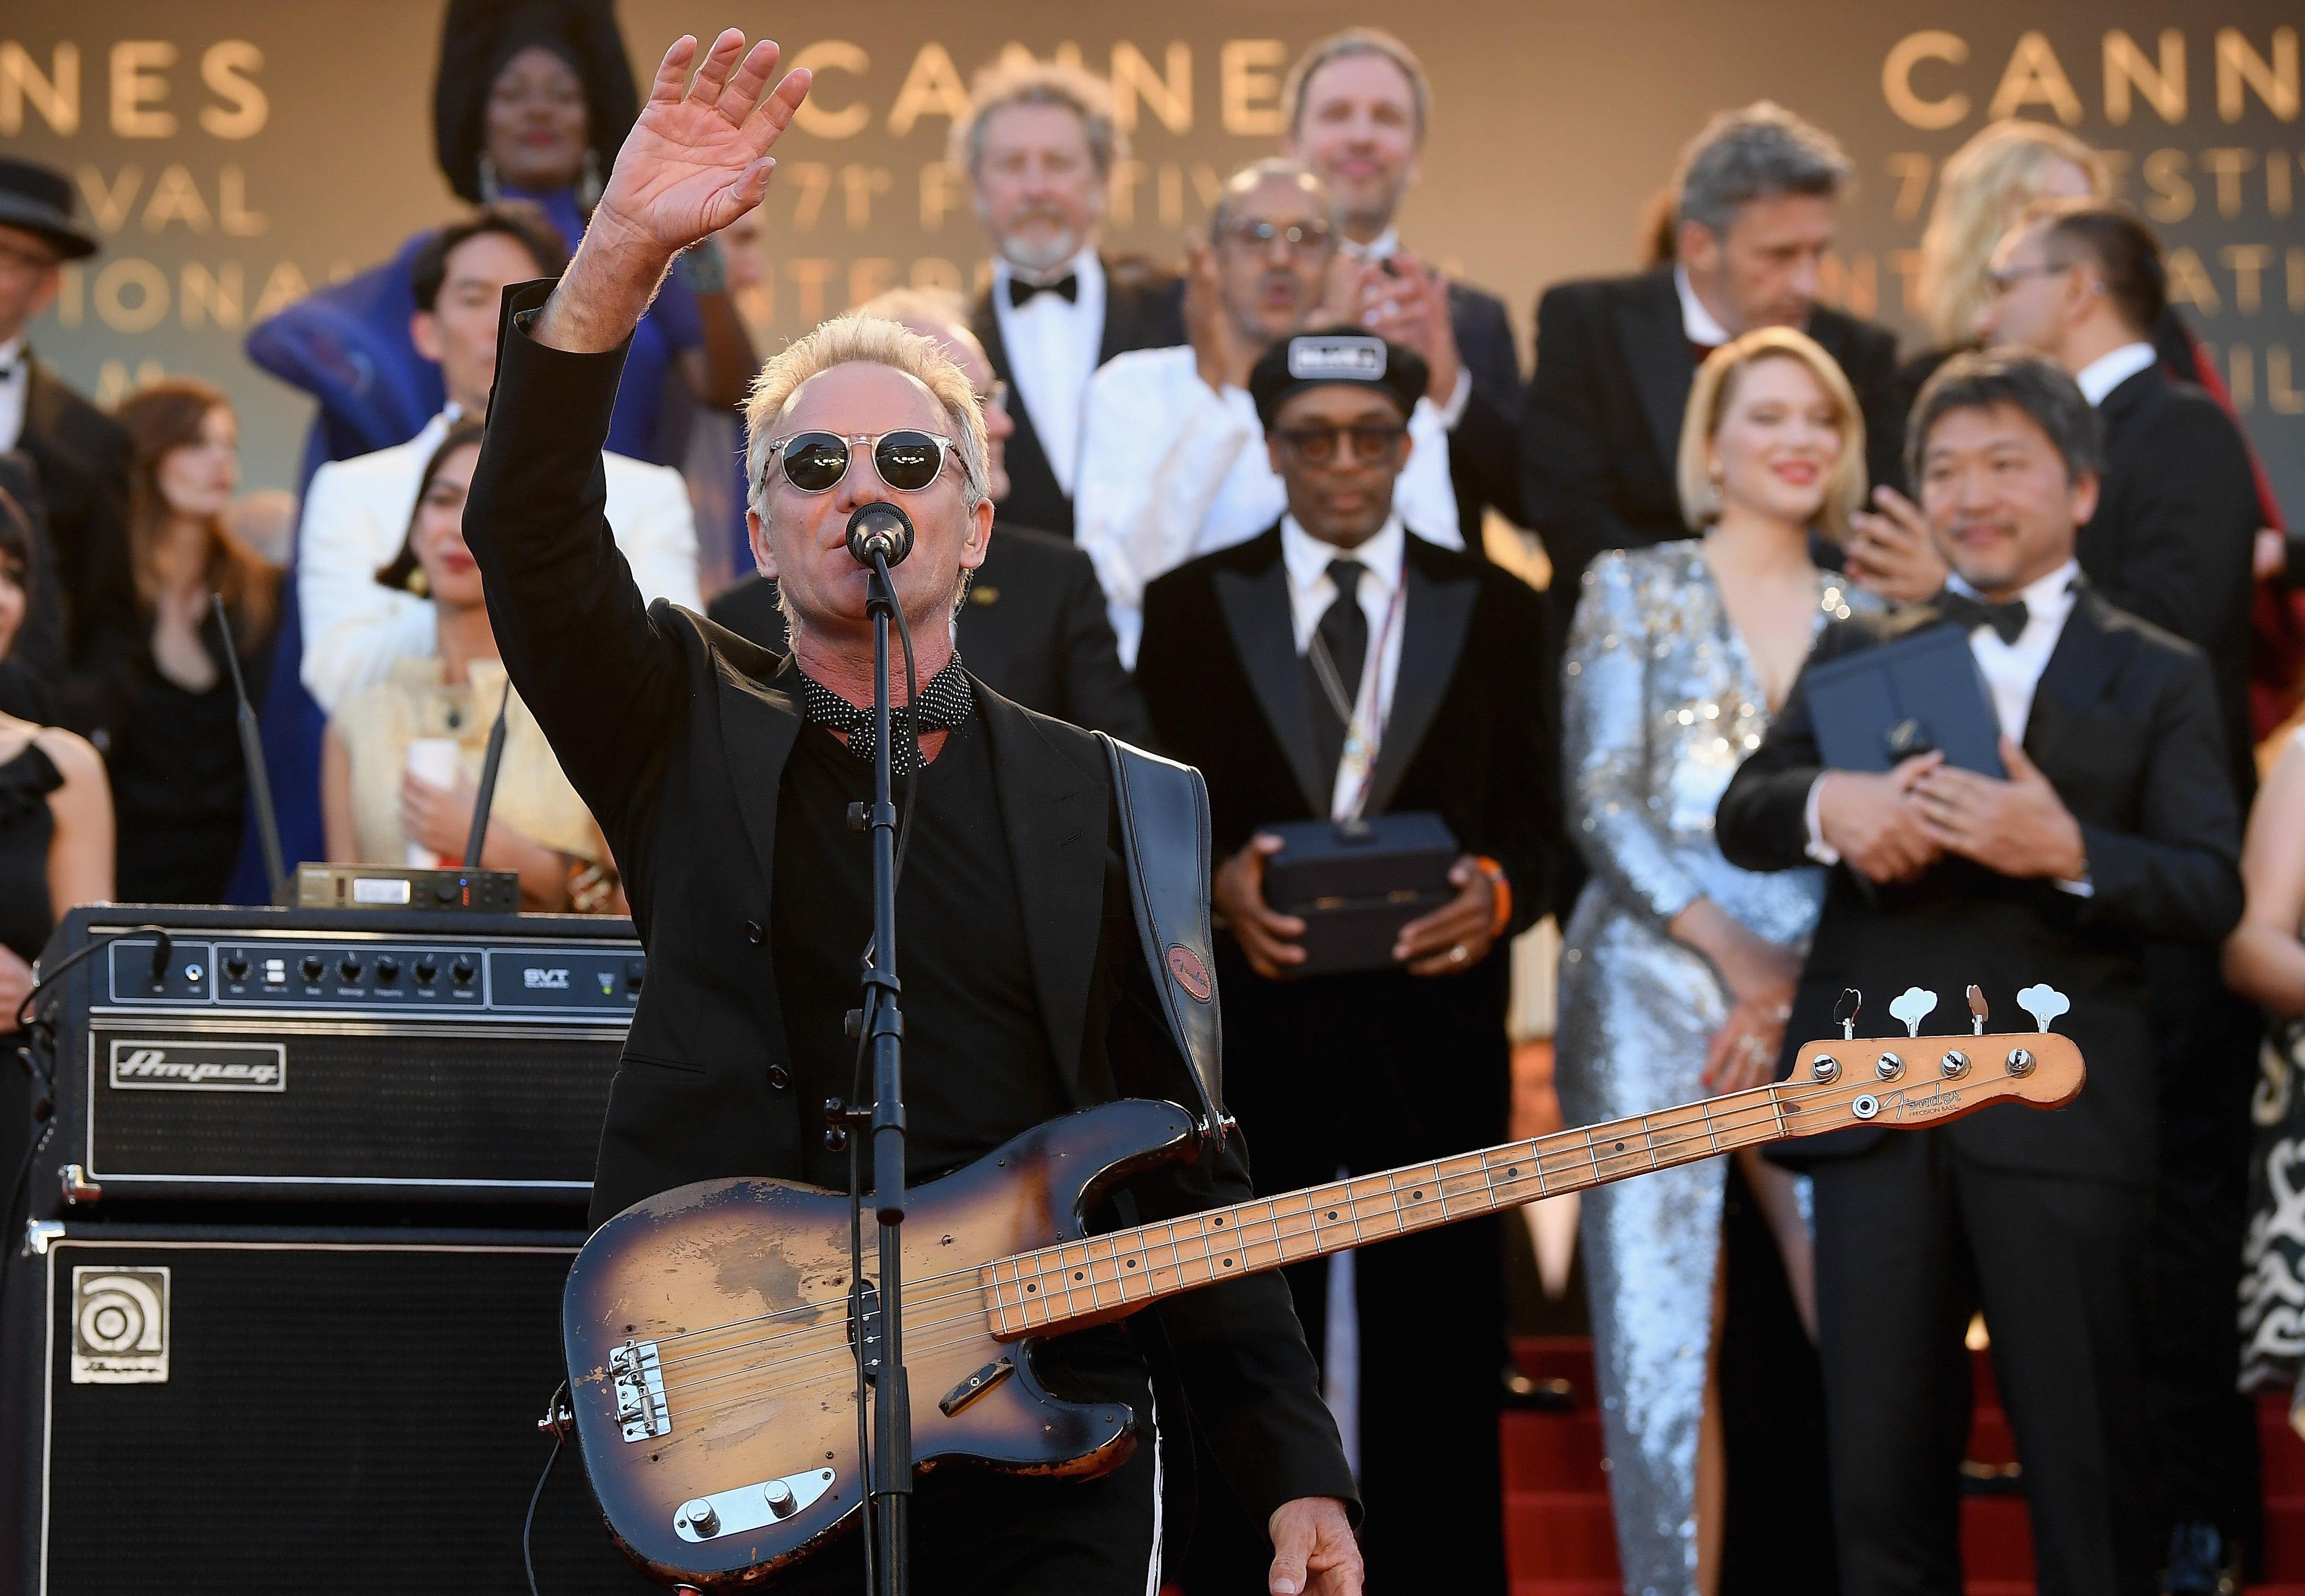 Sting at Cannes 2018